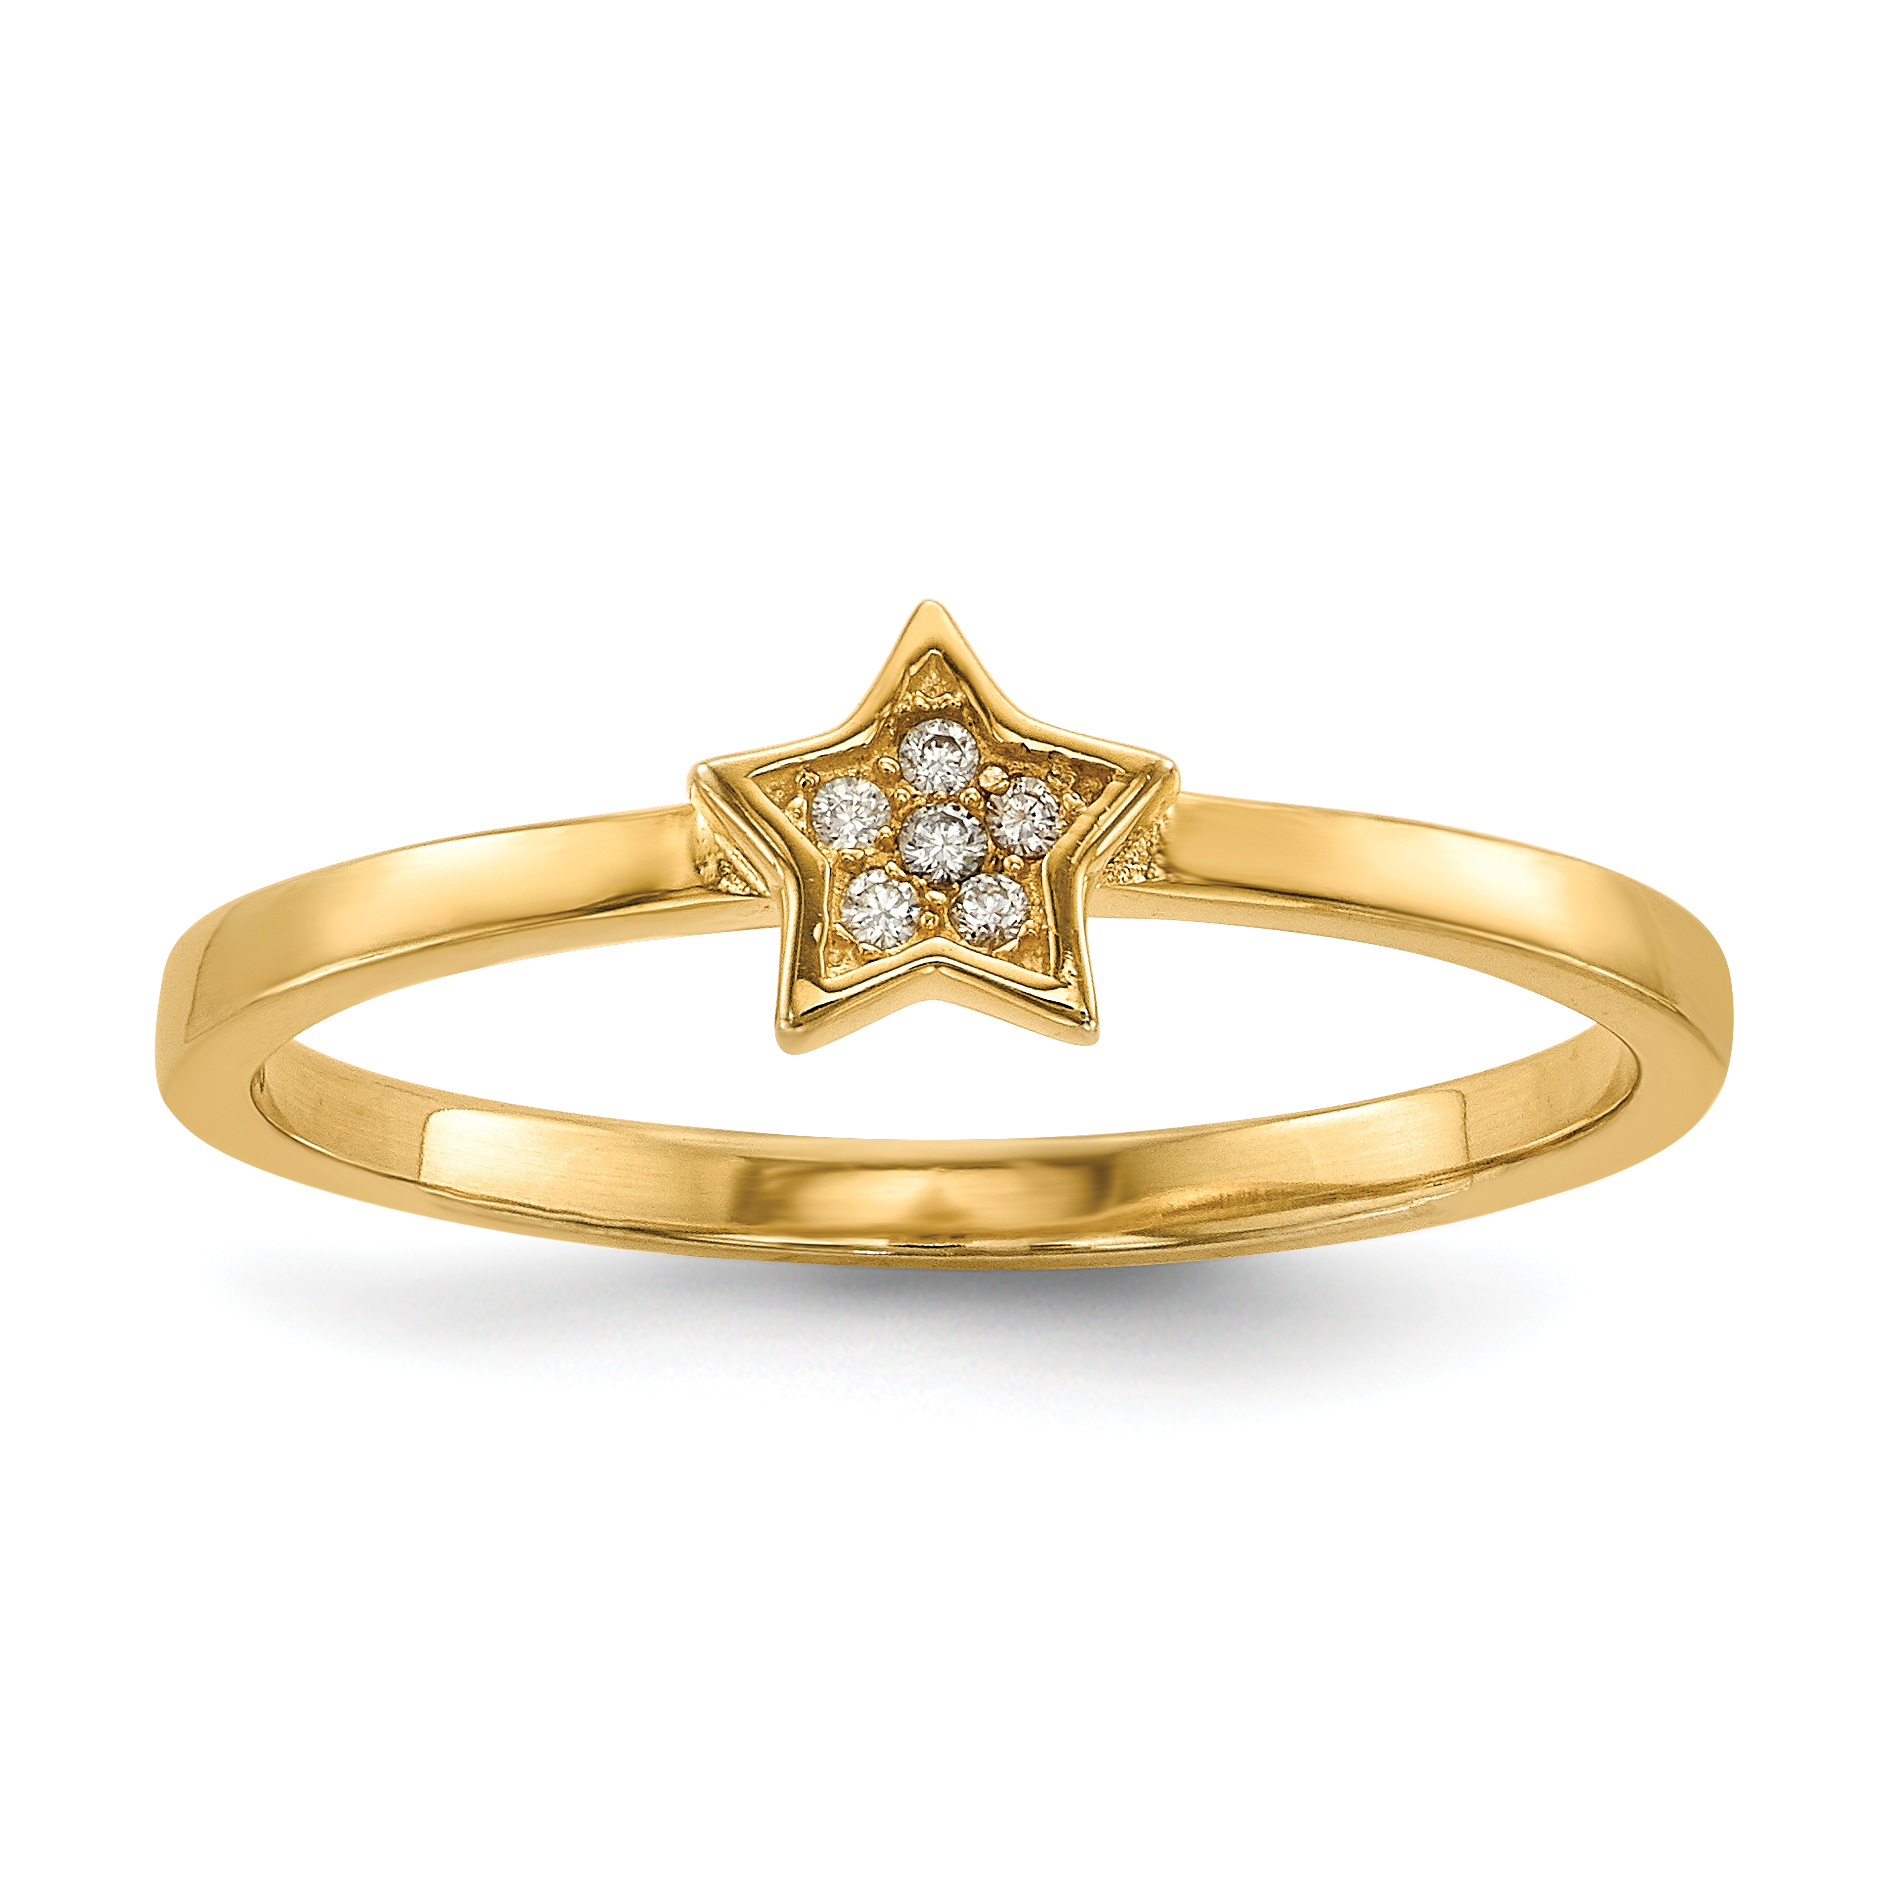 925 Sterling Silver Plate Gold Rose Tone Star Cross Religious Cubic Zirconia Cz 3 Band Ring Set Size 7.00 S/love Sun/moon/star Fine Jewelry Gifts For Women For Her - image 7 de 9